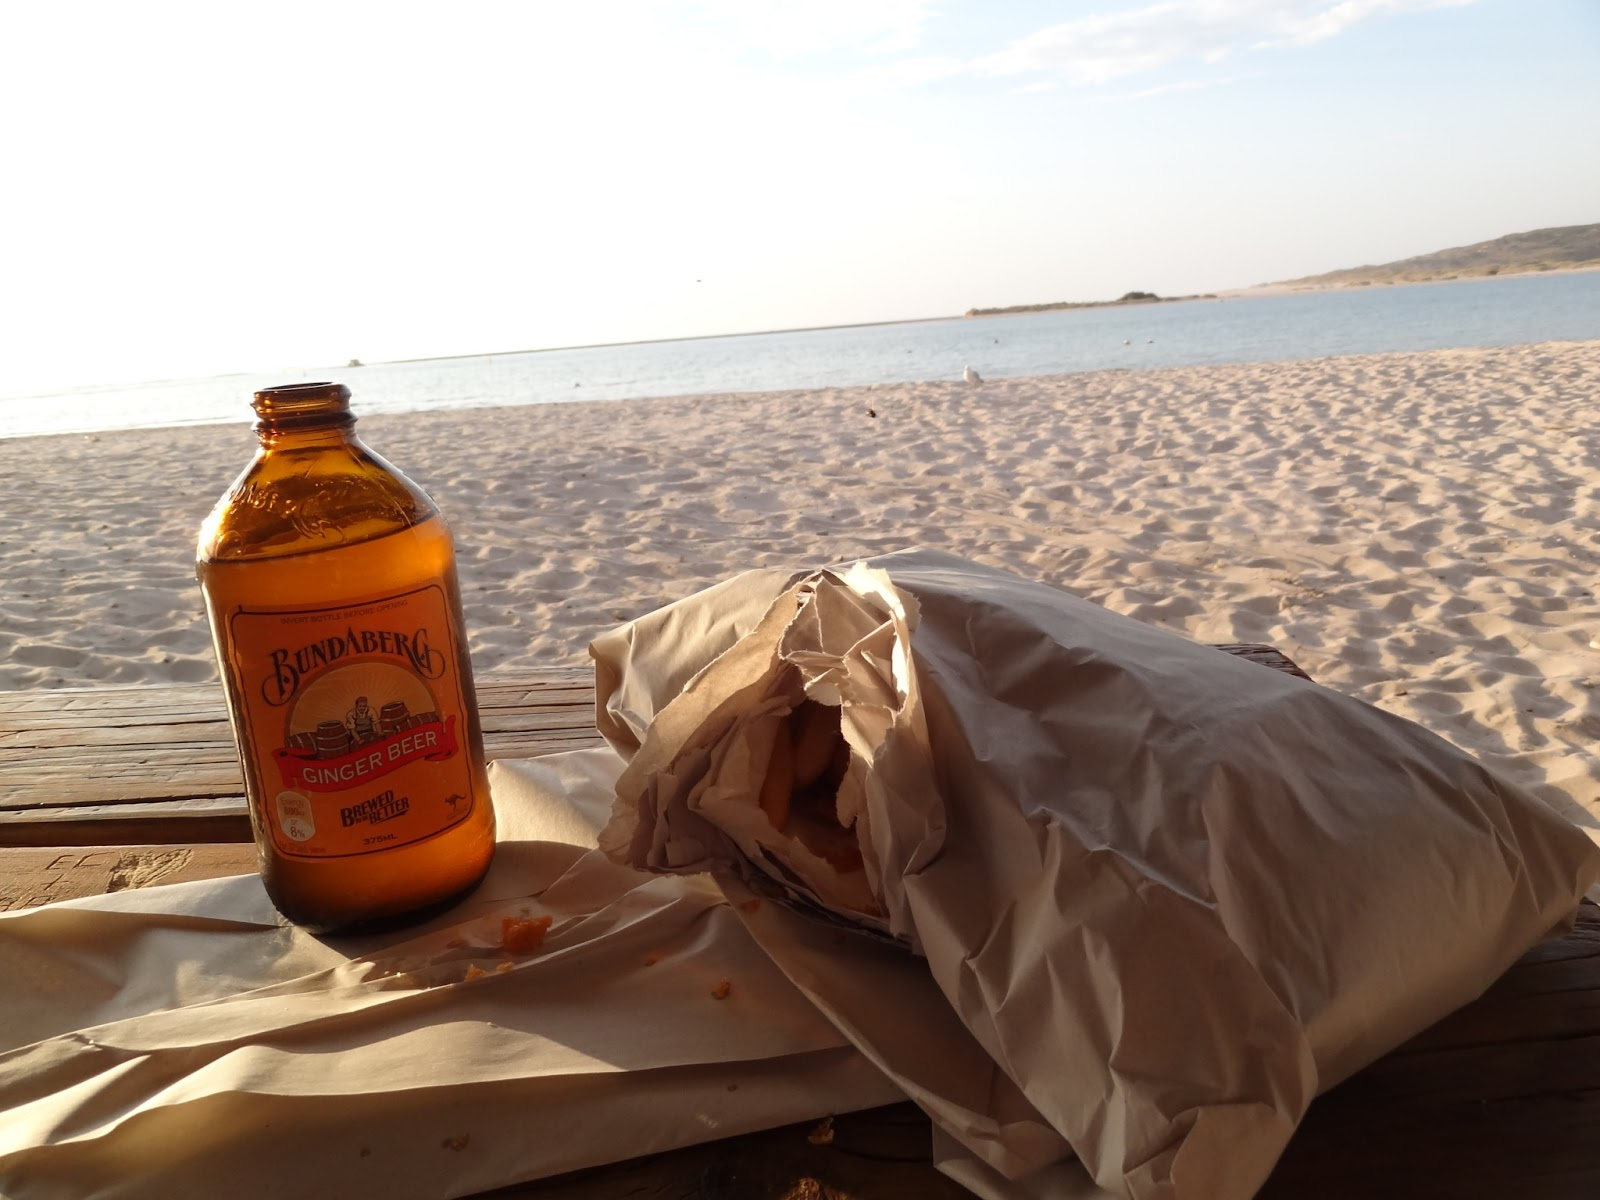 Fish and chips on the beach!